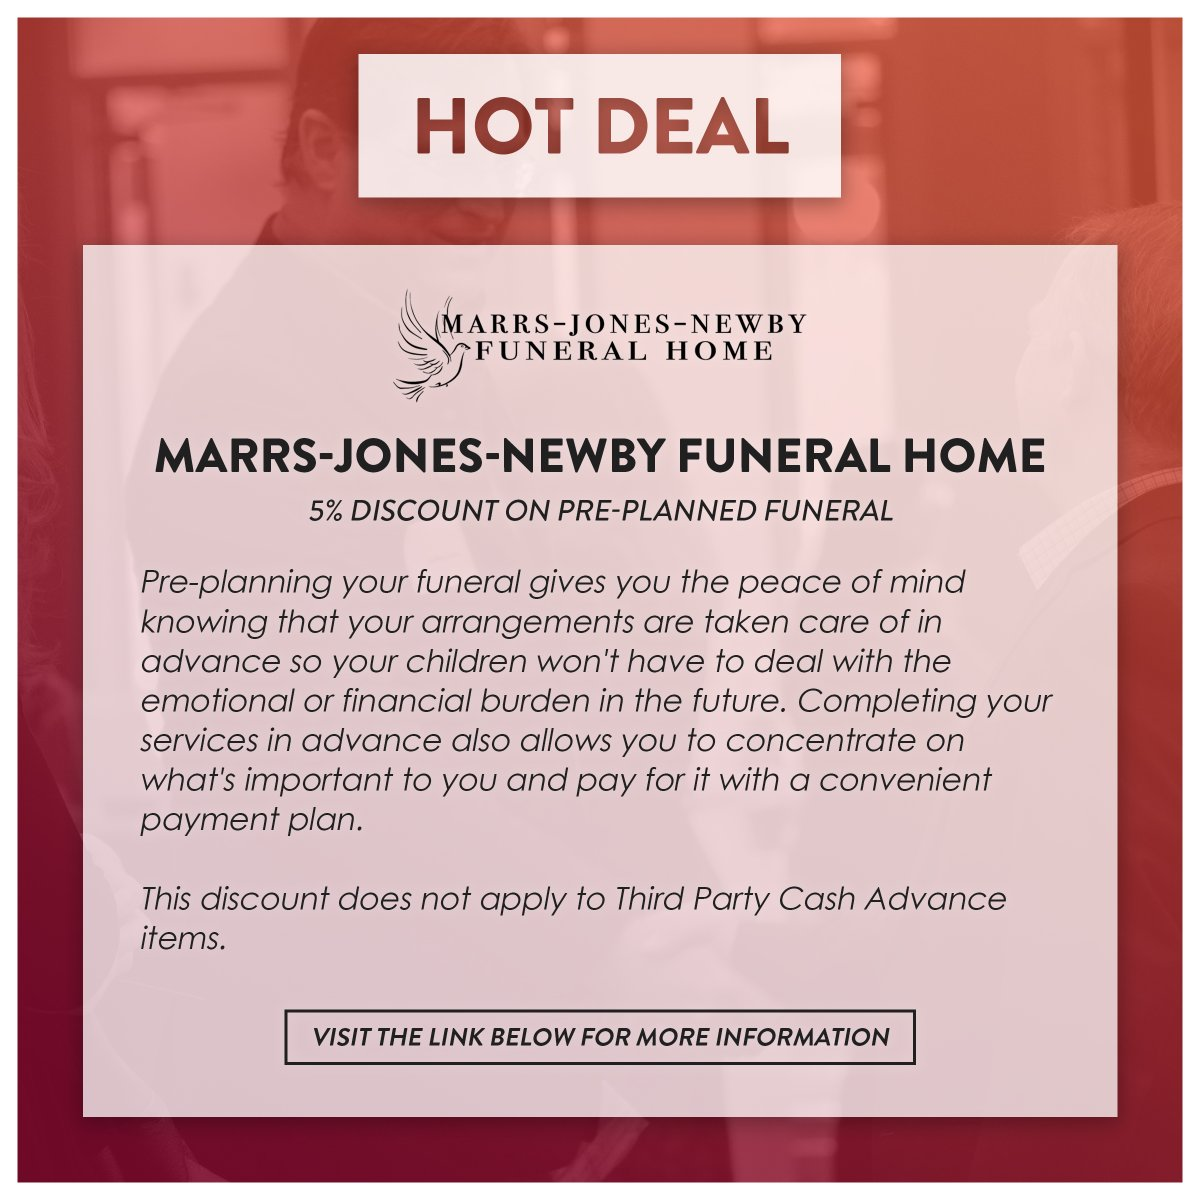 Check out this new Hot Deal from Marrs-Jones-Newby Funeral Home! Visit the link below for more information!